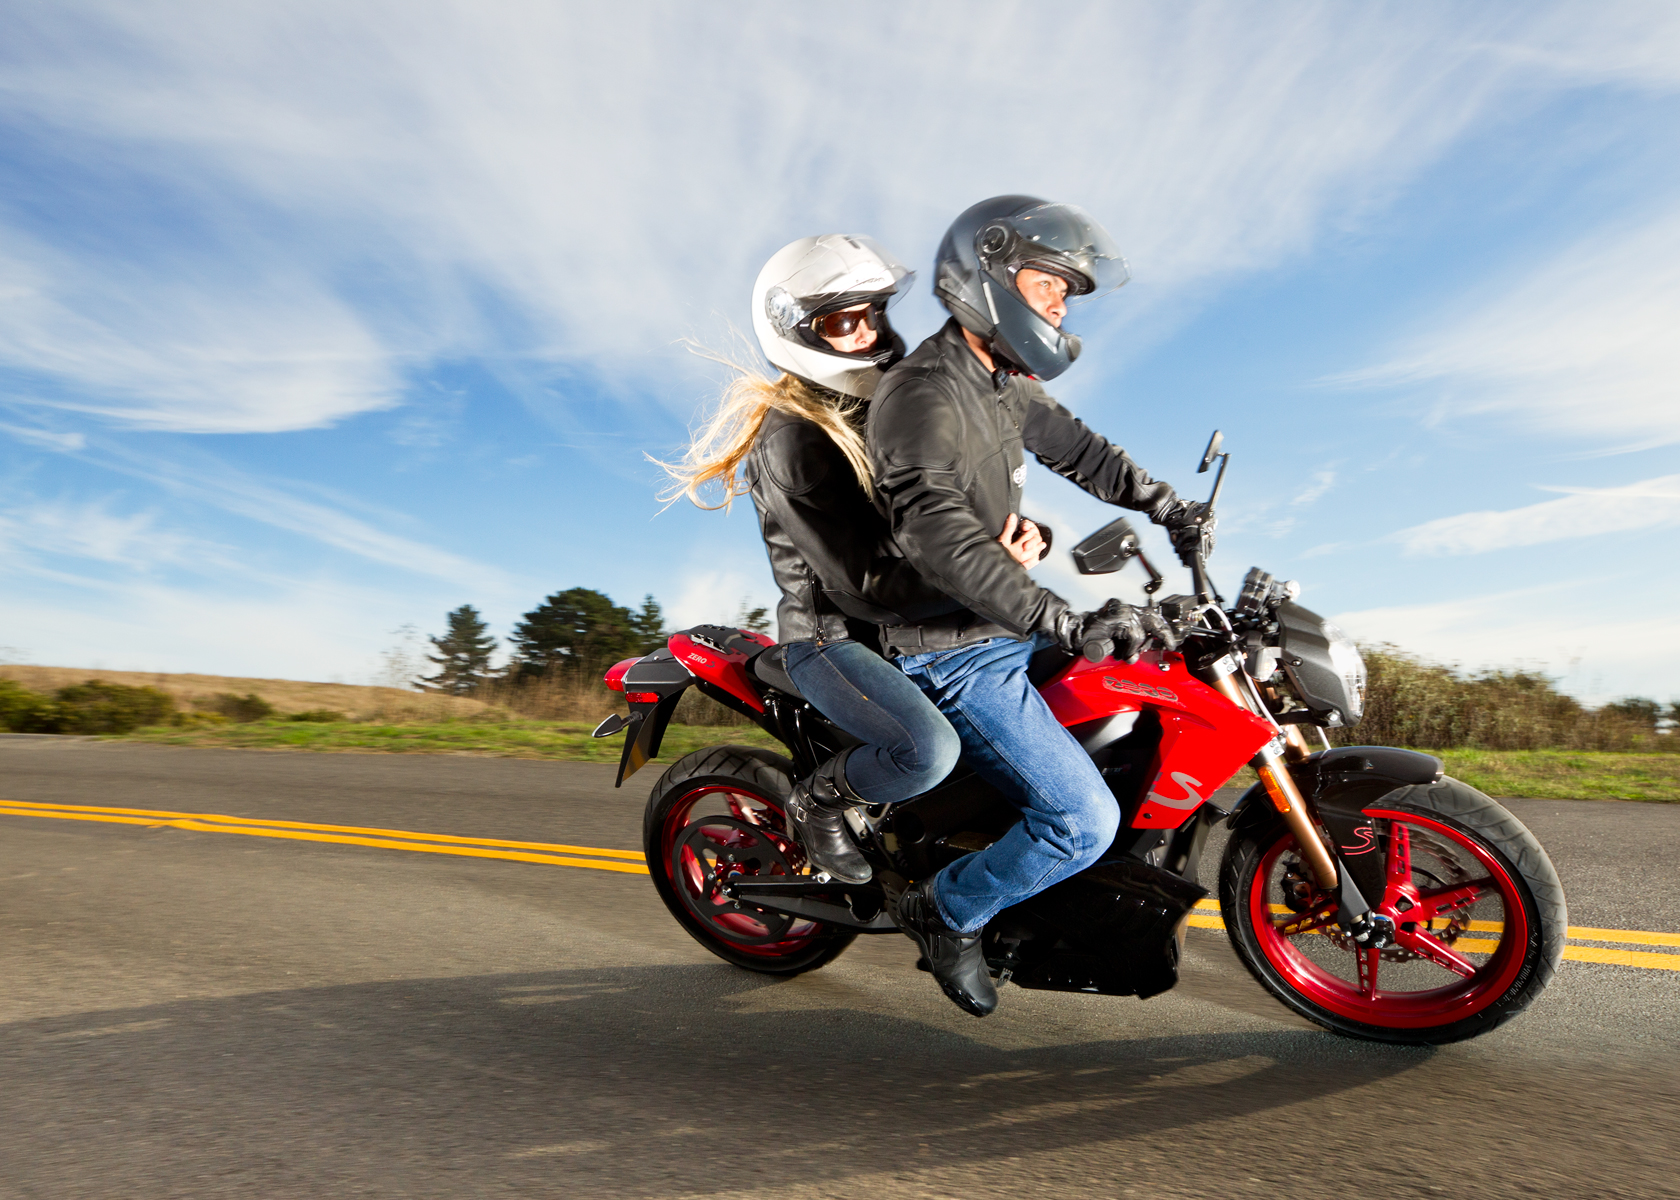 2012 Zero S Electric Motorcycle: Rider and Companion, Cruising